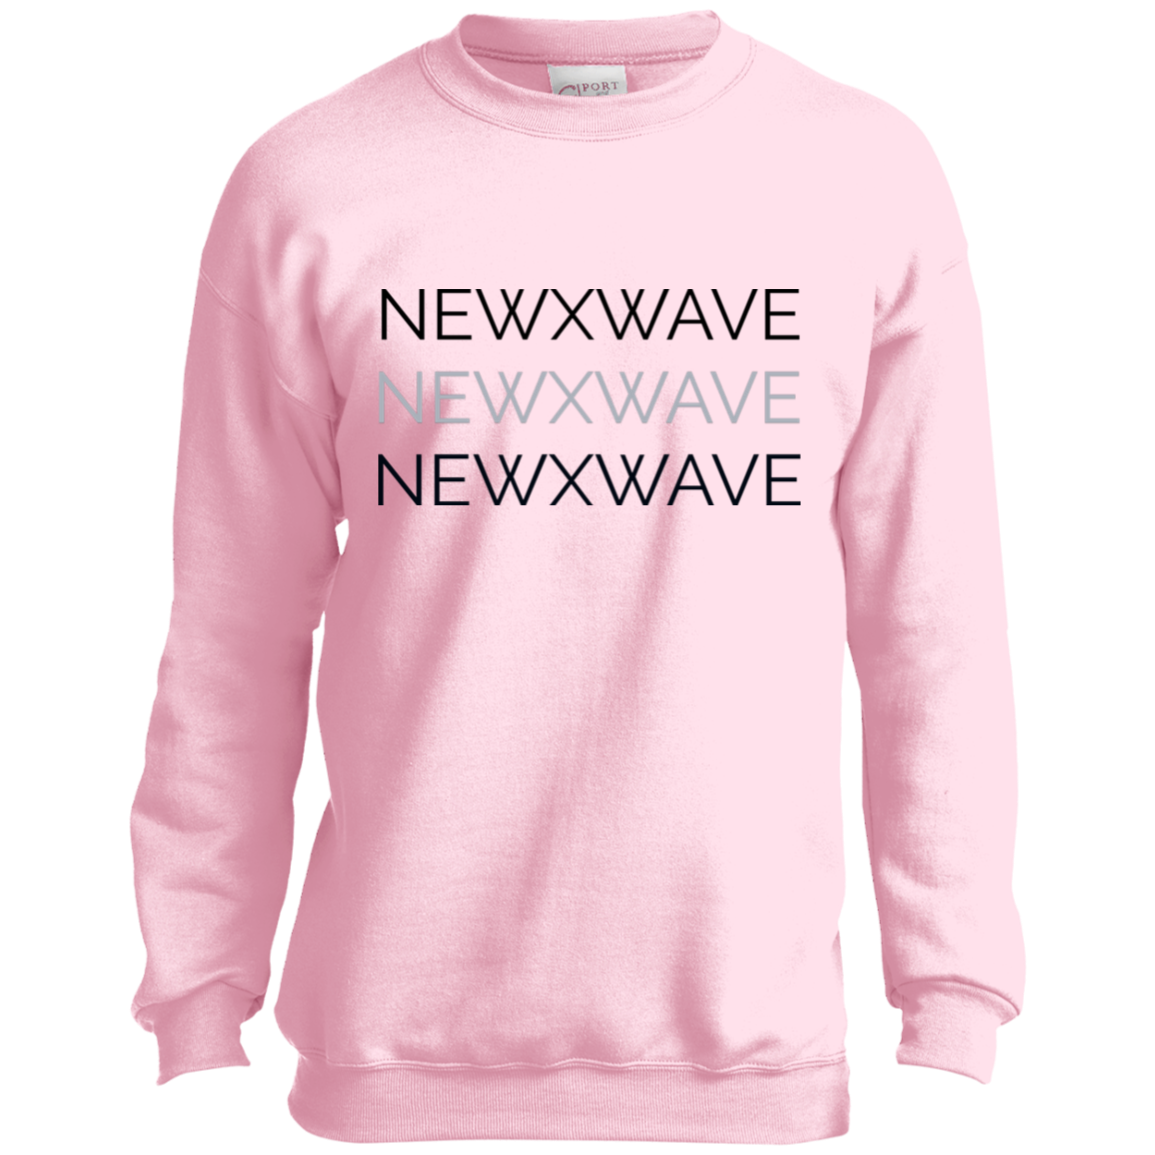 NXWX3 Youth Crewneck